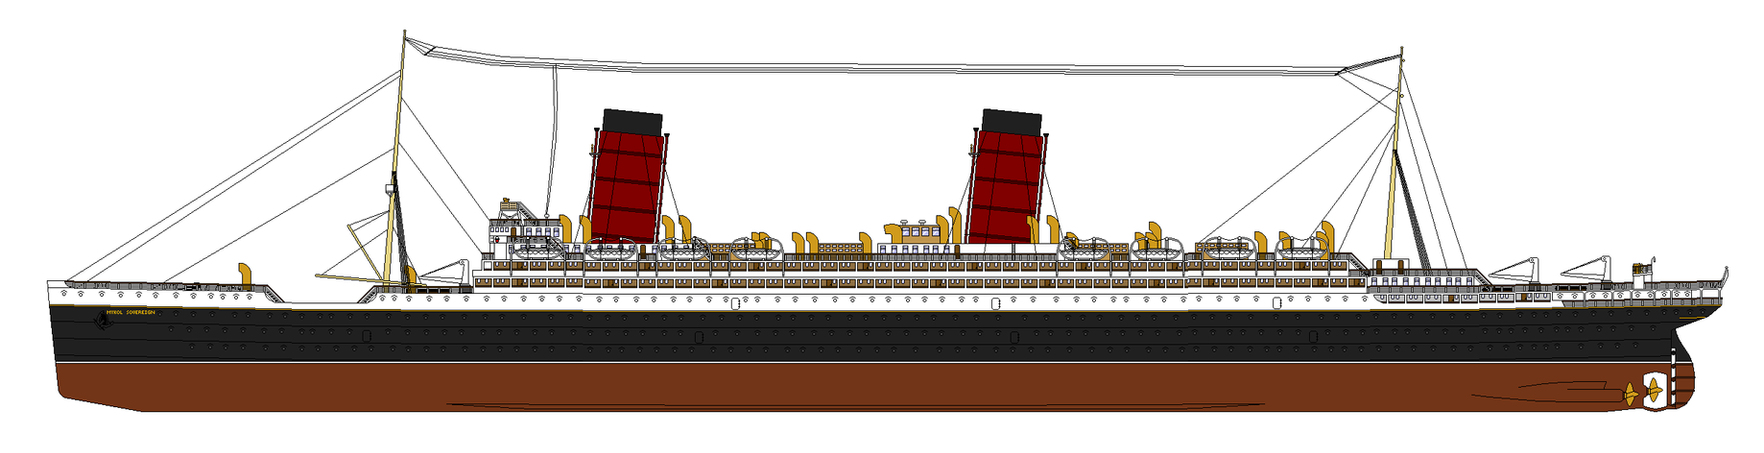 Rms Mykol Sovereign By Rindfan On Deviantart